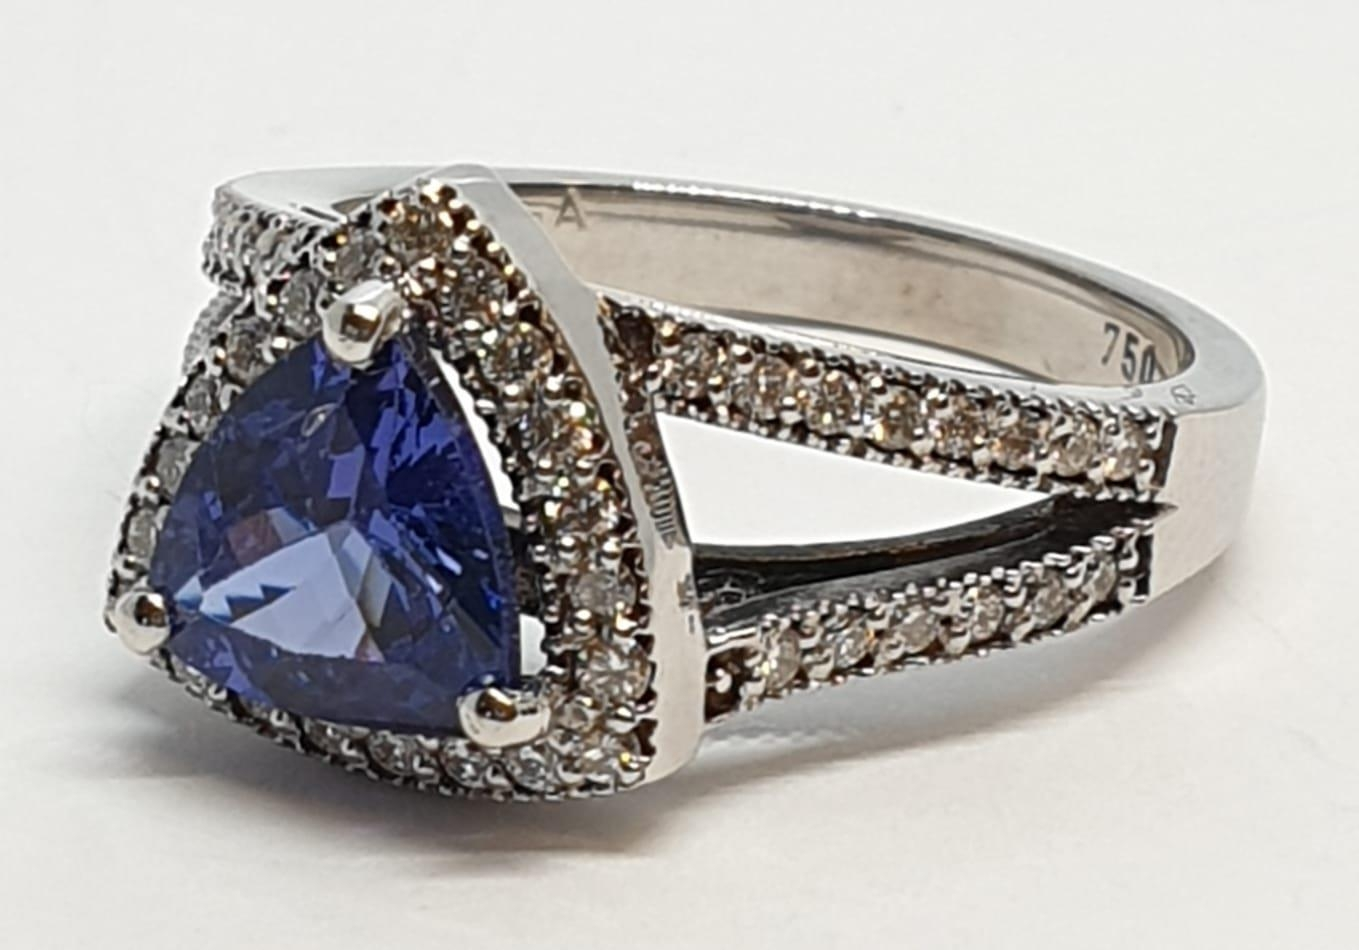 18CT WHITE GOLD RING WITH TRIANGULAR TANZANITE CENTRE AND DIAMONDS ON SHOULDERS, WEIGHT 7G AND - Image 3 of 10